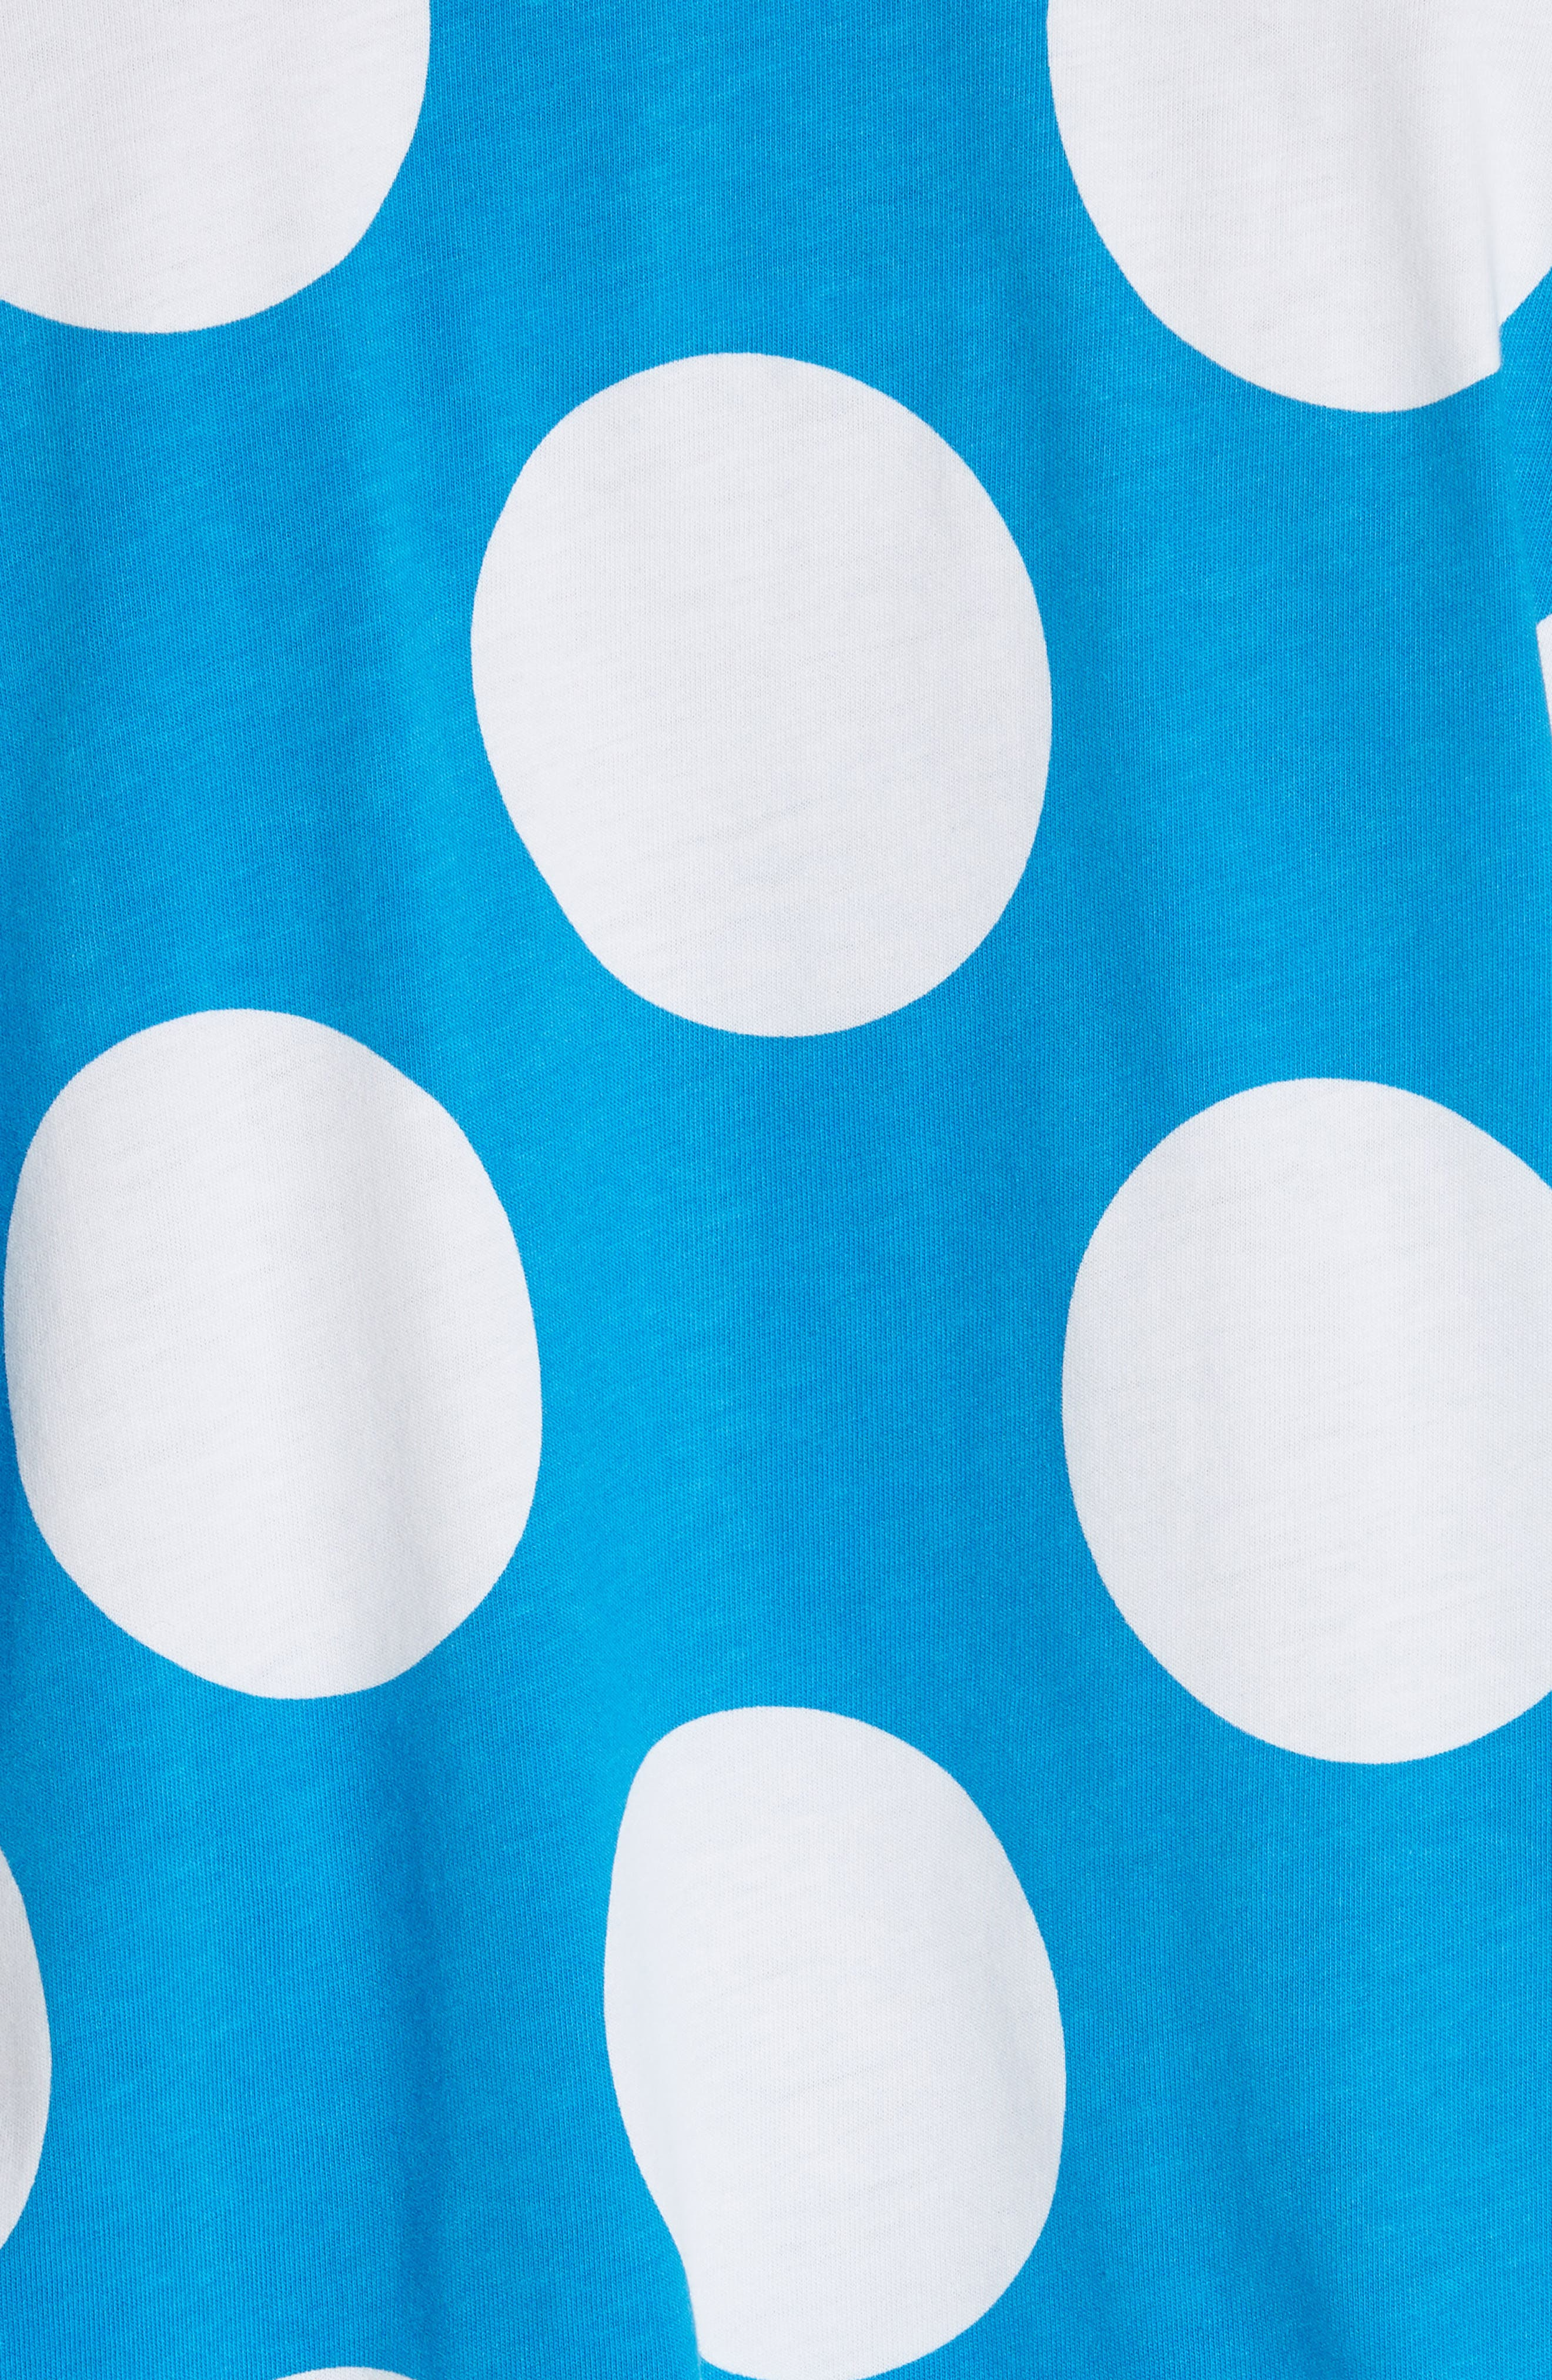 MOSCHINO, Polka Dot Print Tee, Alternate thumbnail 6, color, BLUE